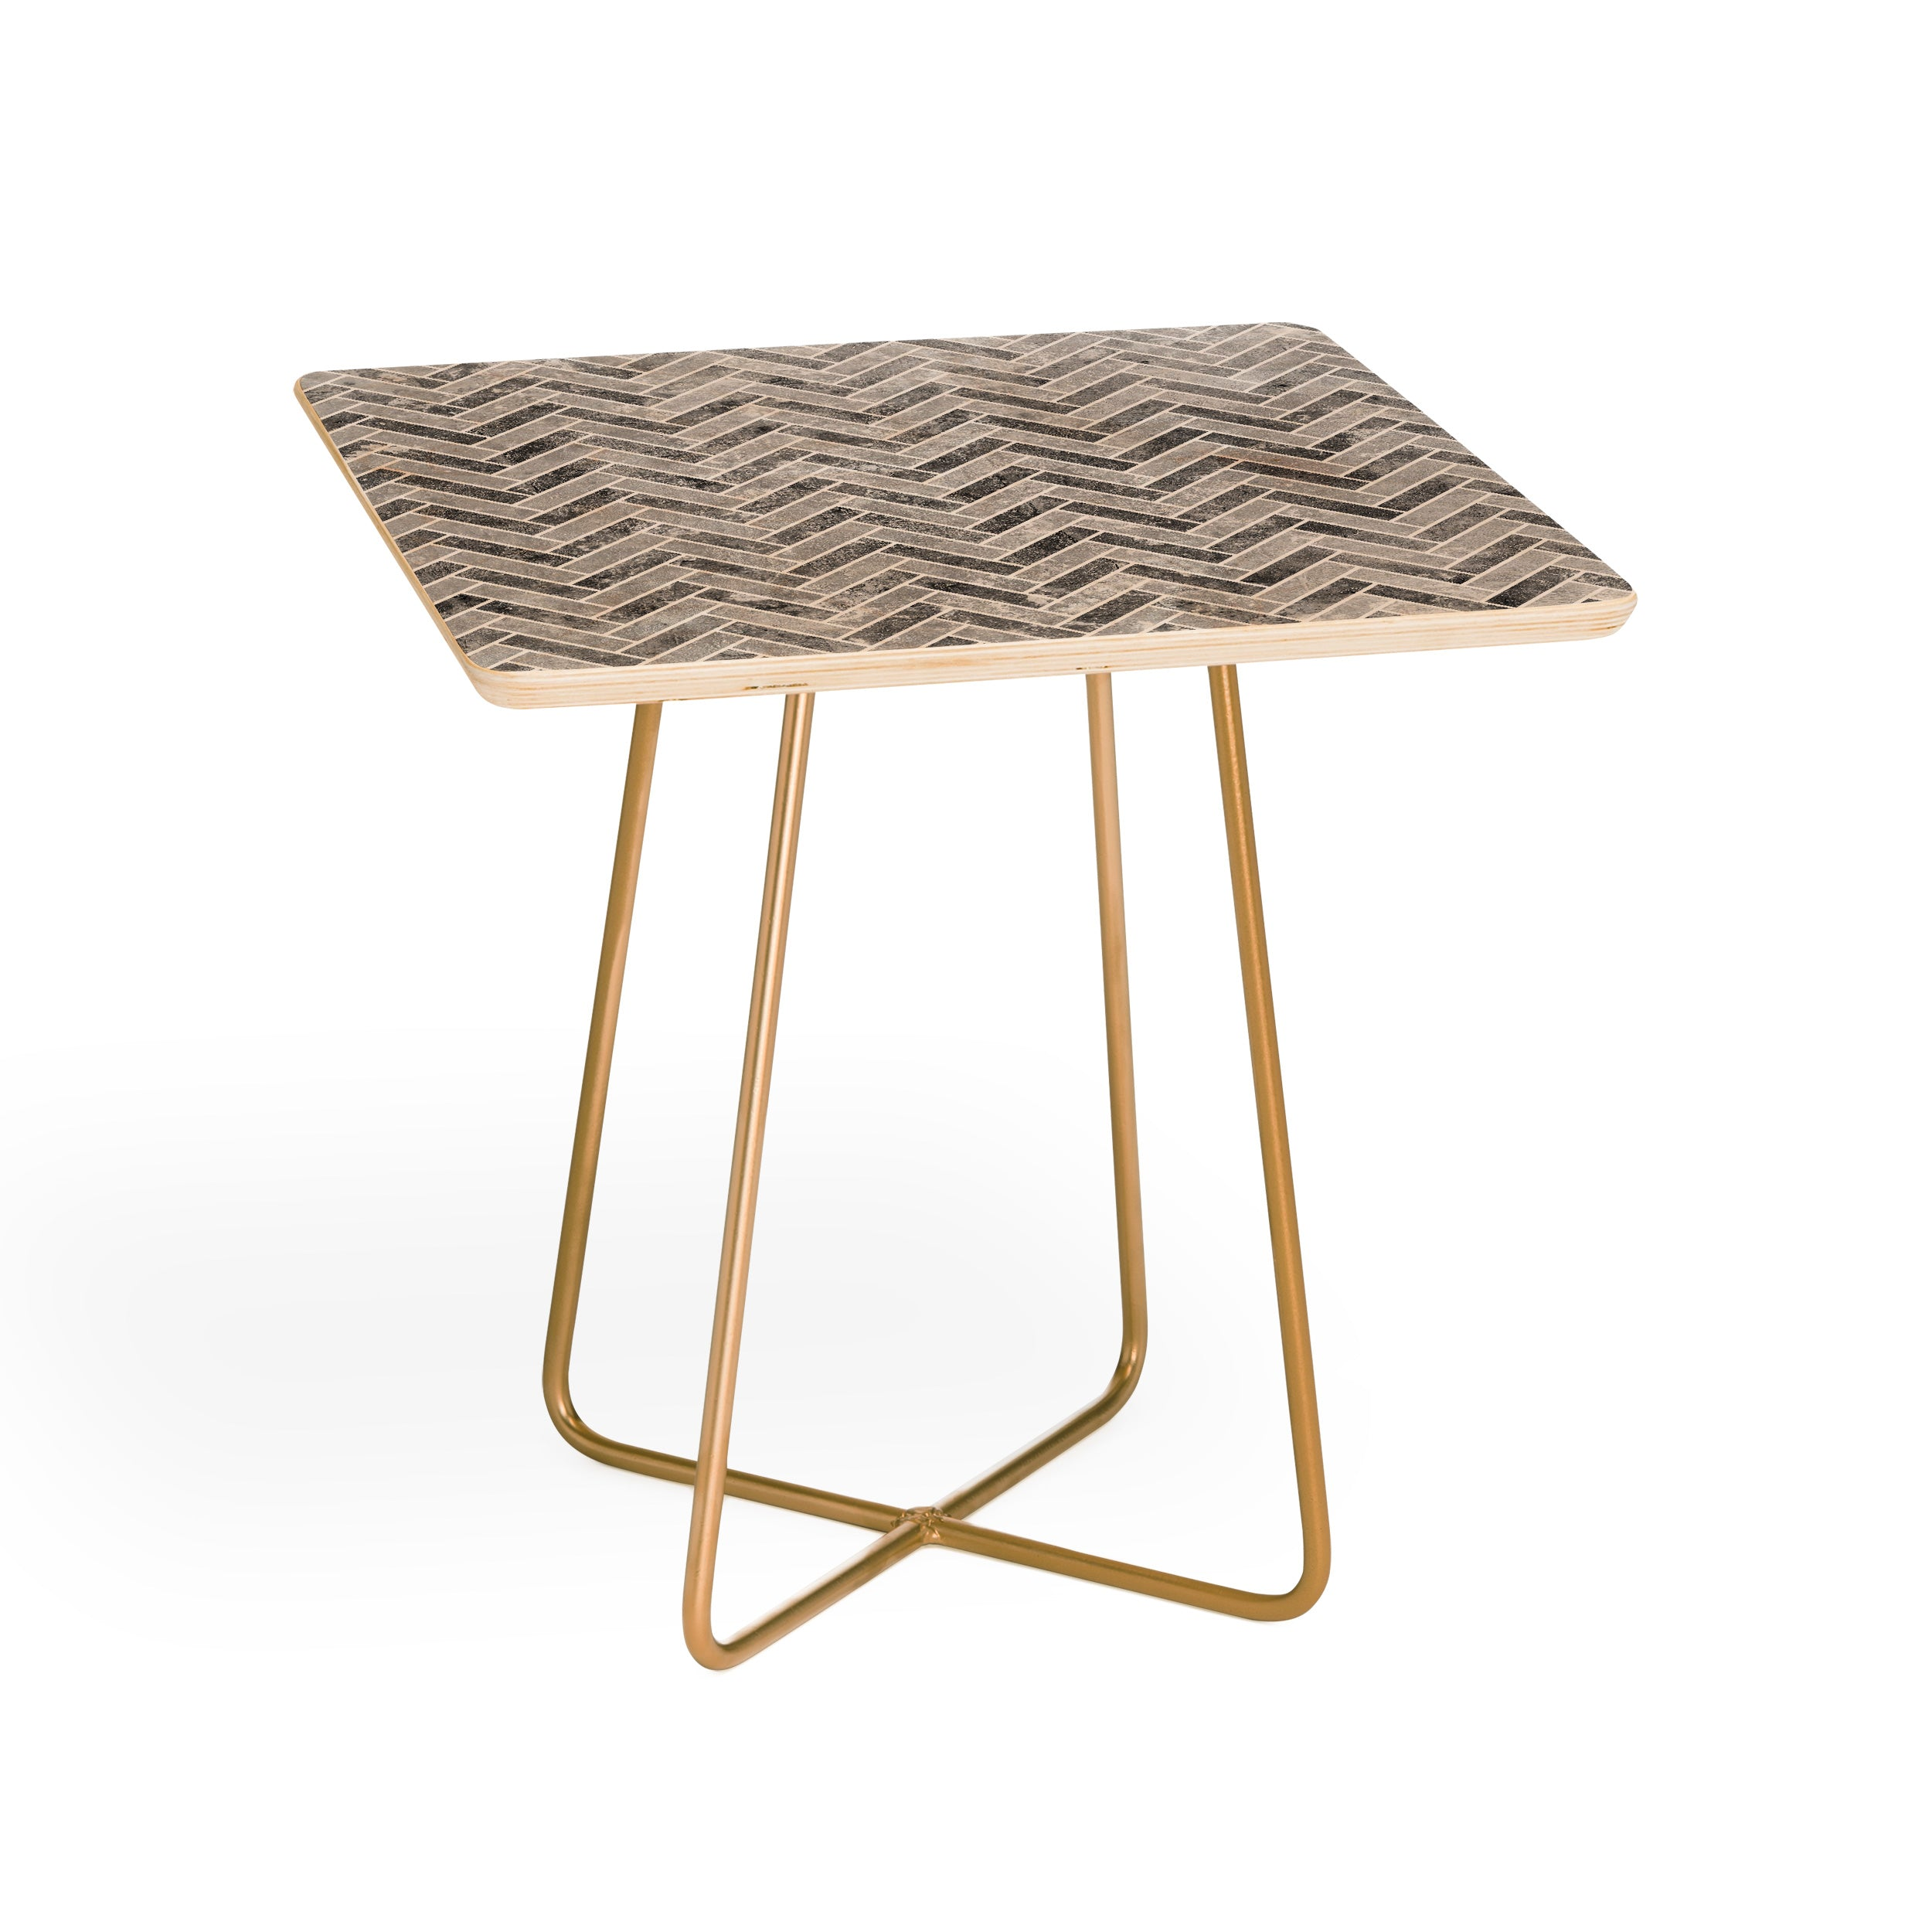 Kelly Haines Concrete Herringbone Side Table